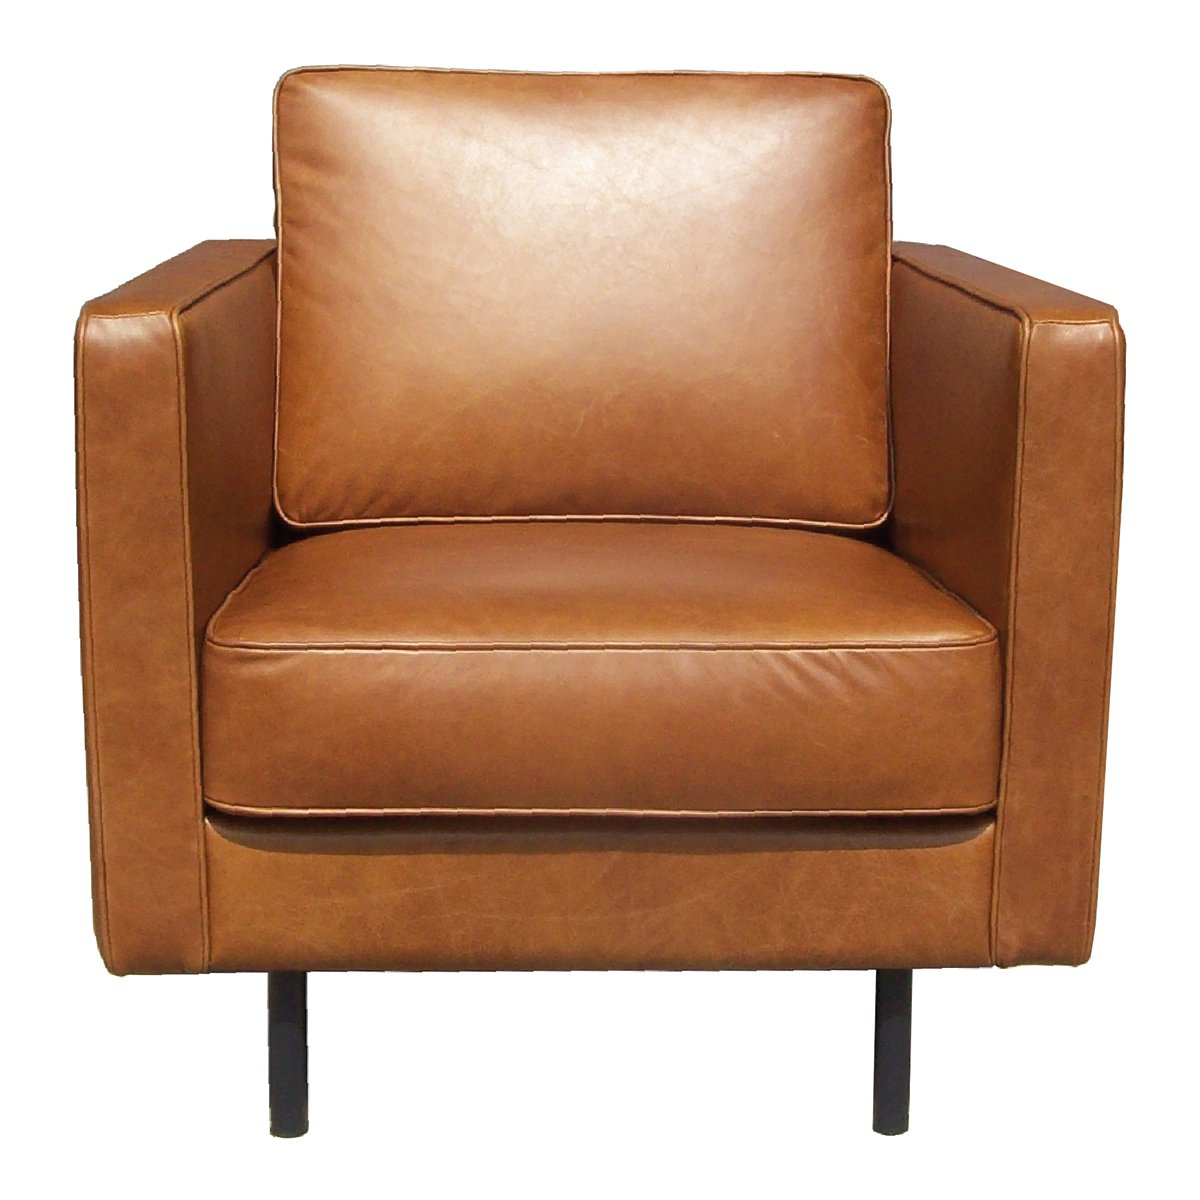 Ethnicraft N501 Fauteuil